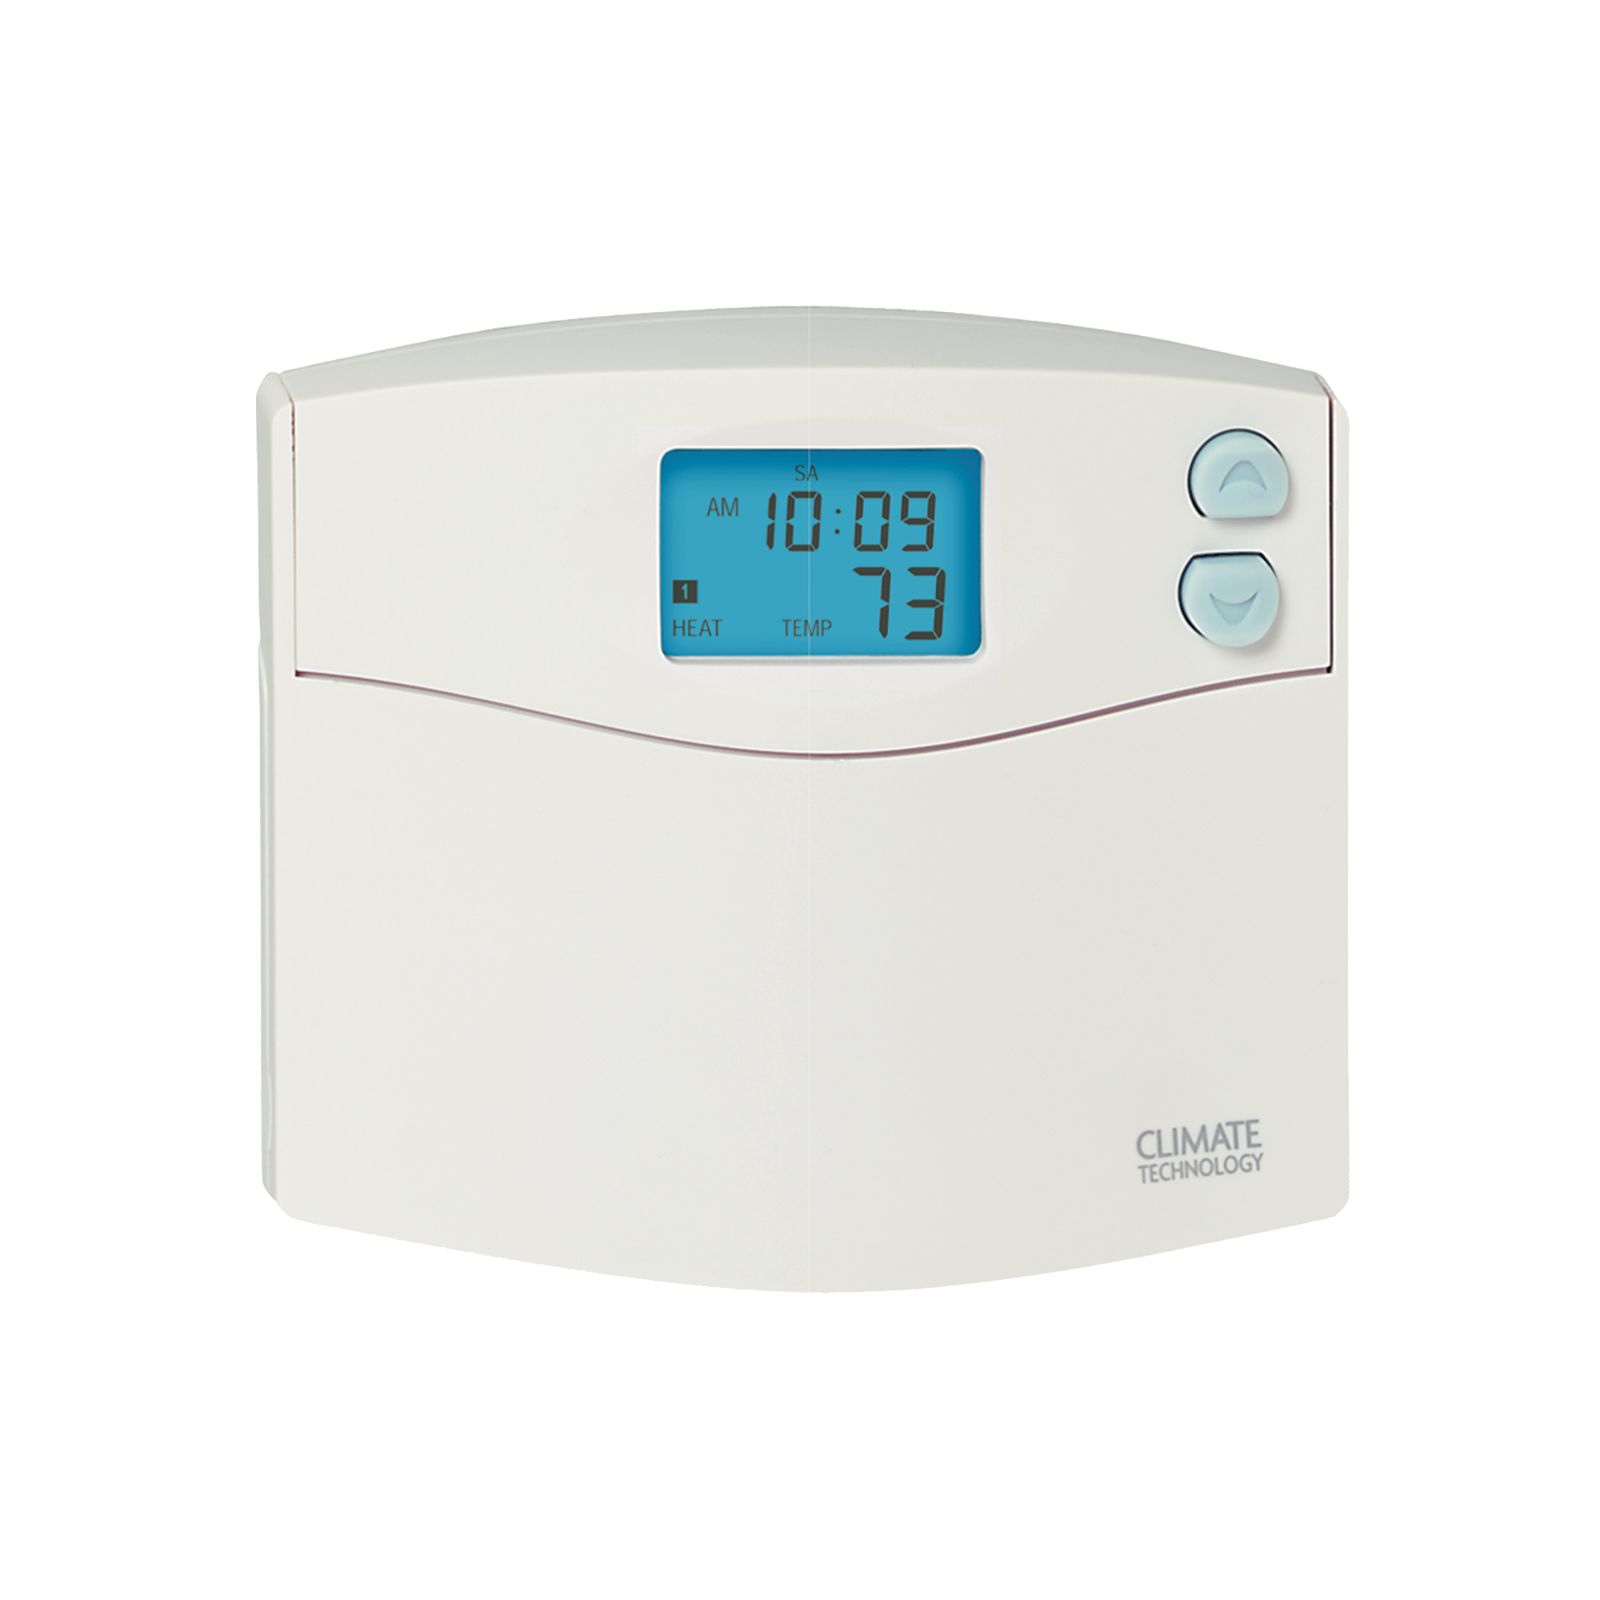 Supco 43154 -  Climate Technology Programmable Digital Wall Thermostat 1H/1C